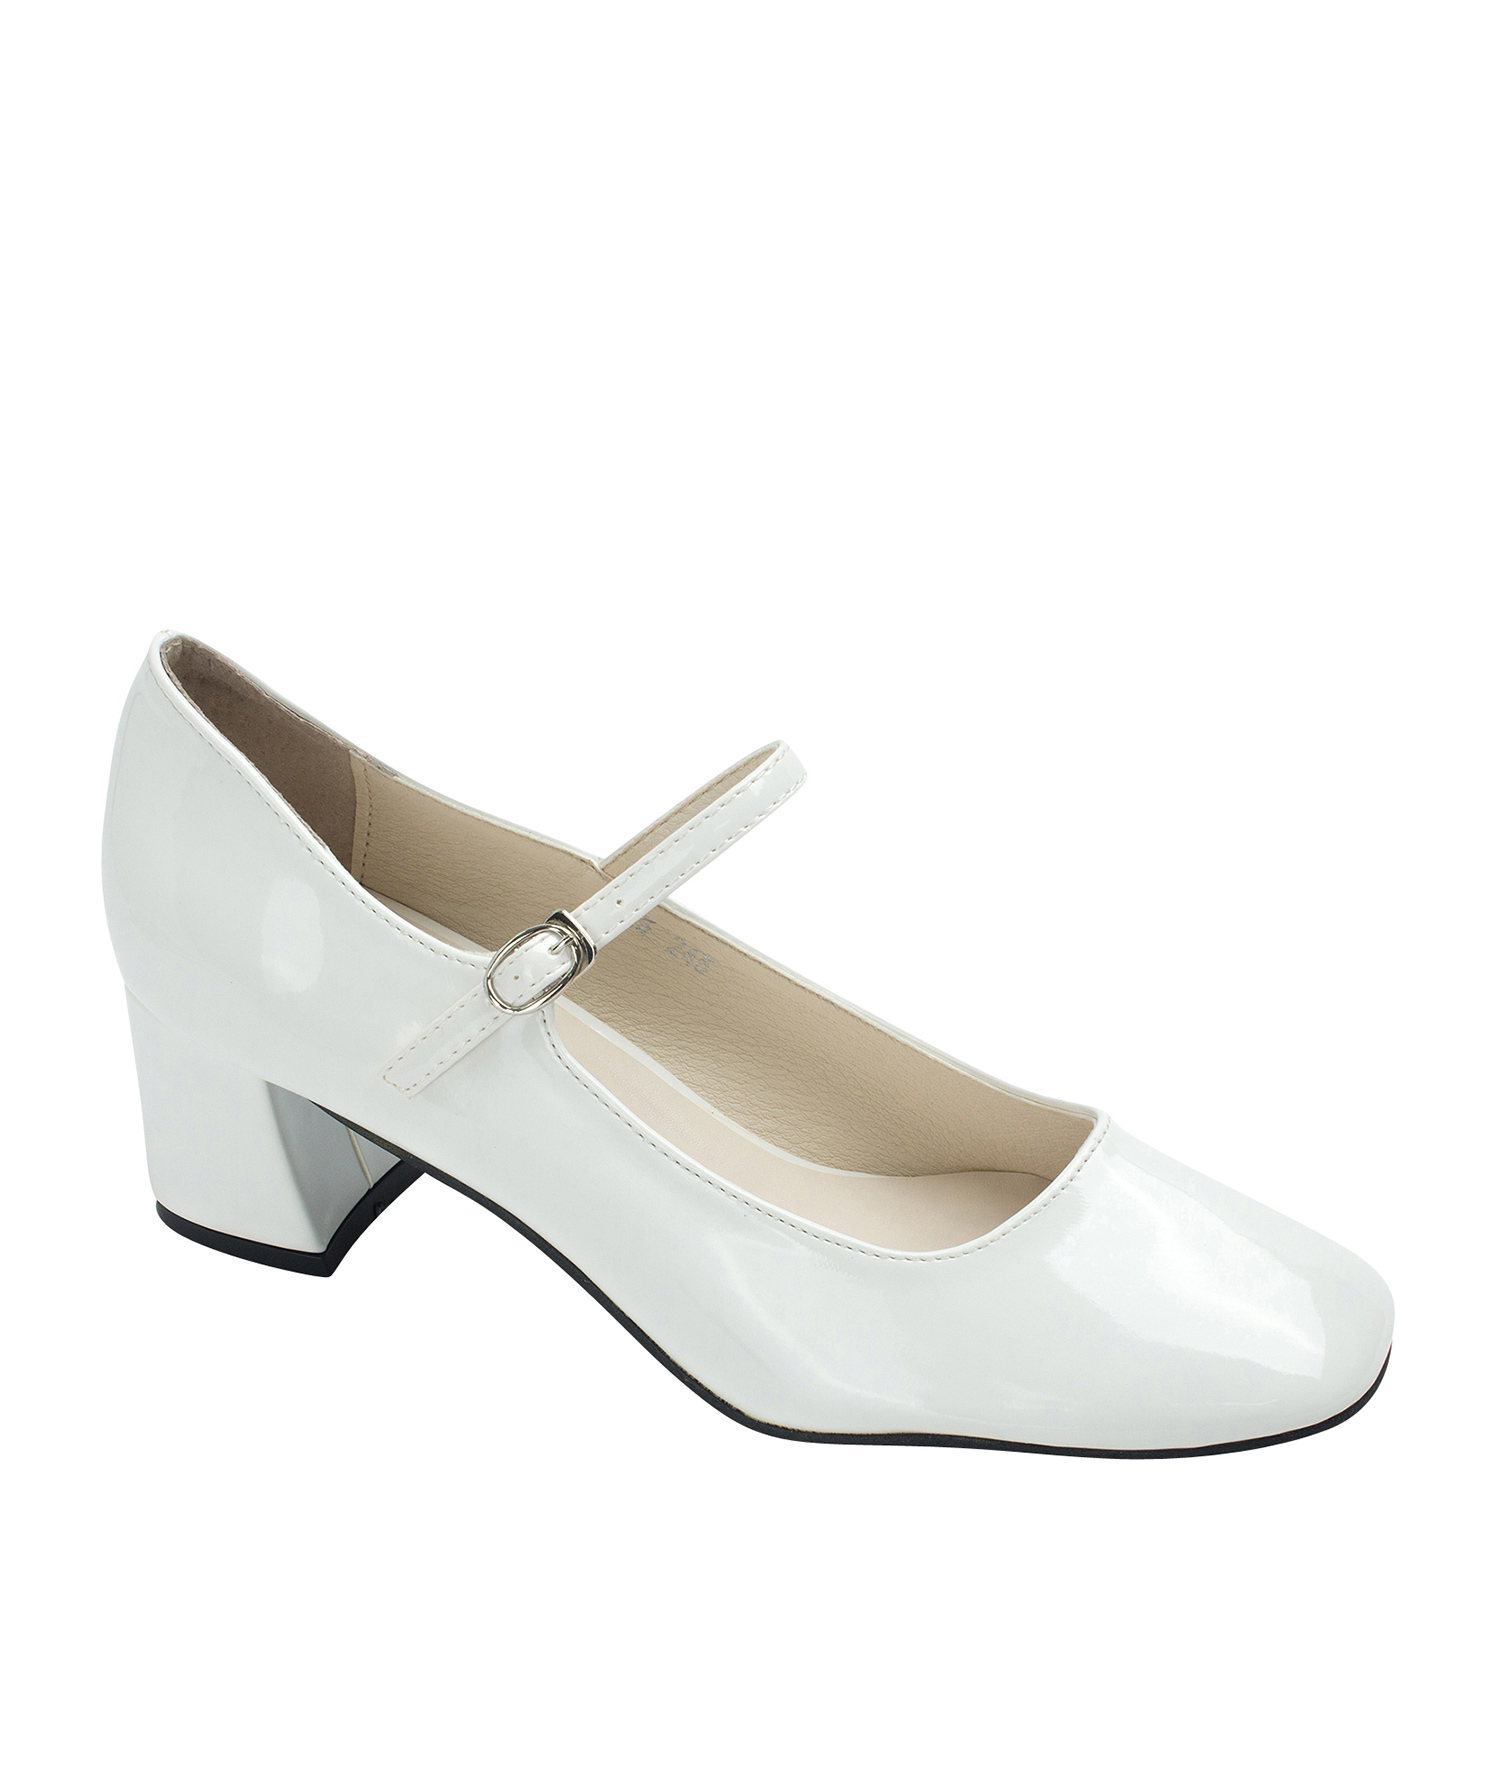 74b978bcef3 Annakastle Womens Faux Patent Mary Jane Chunky Heel Pumps White